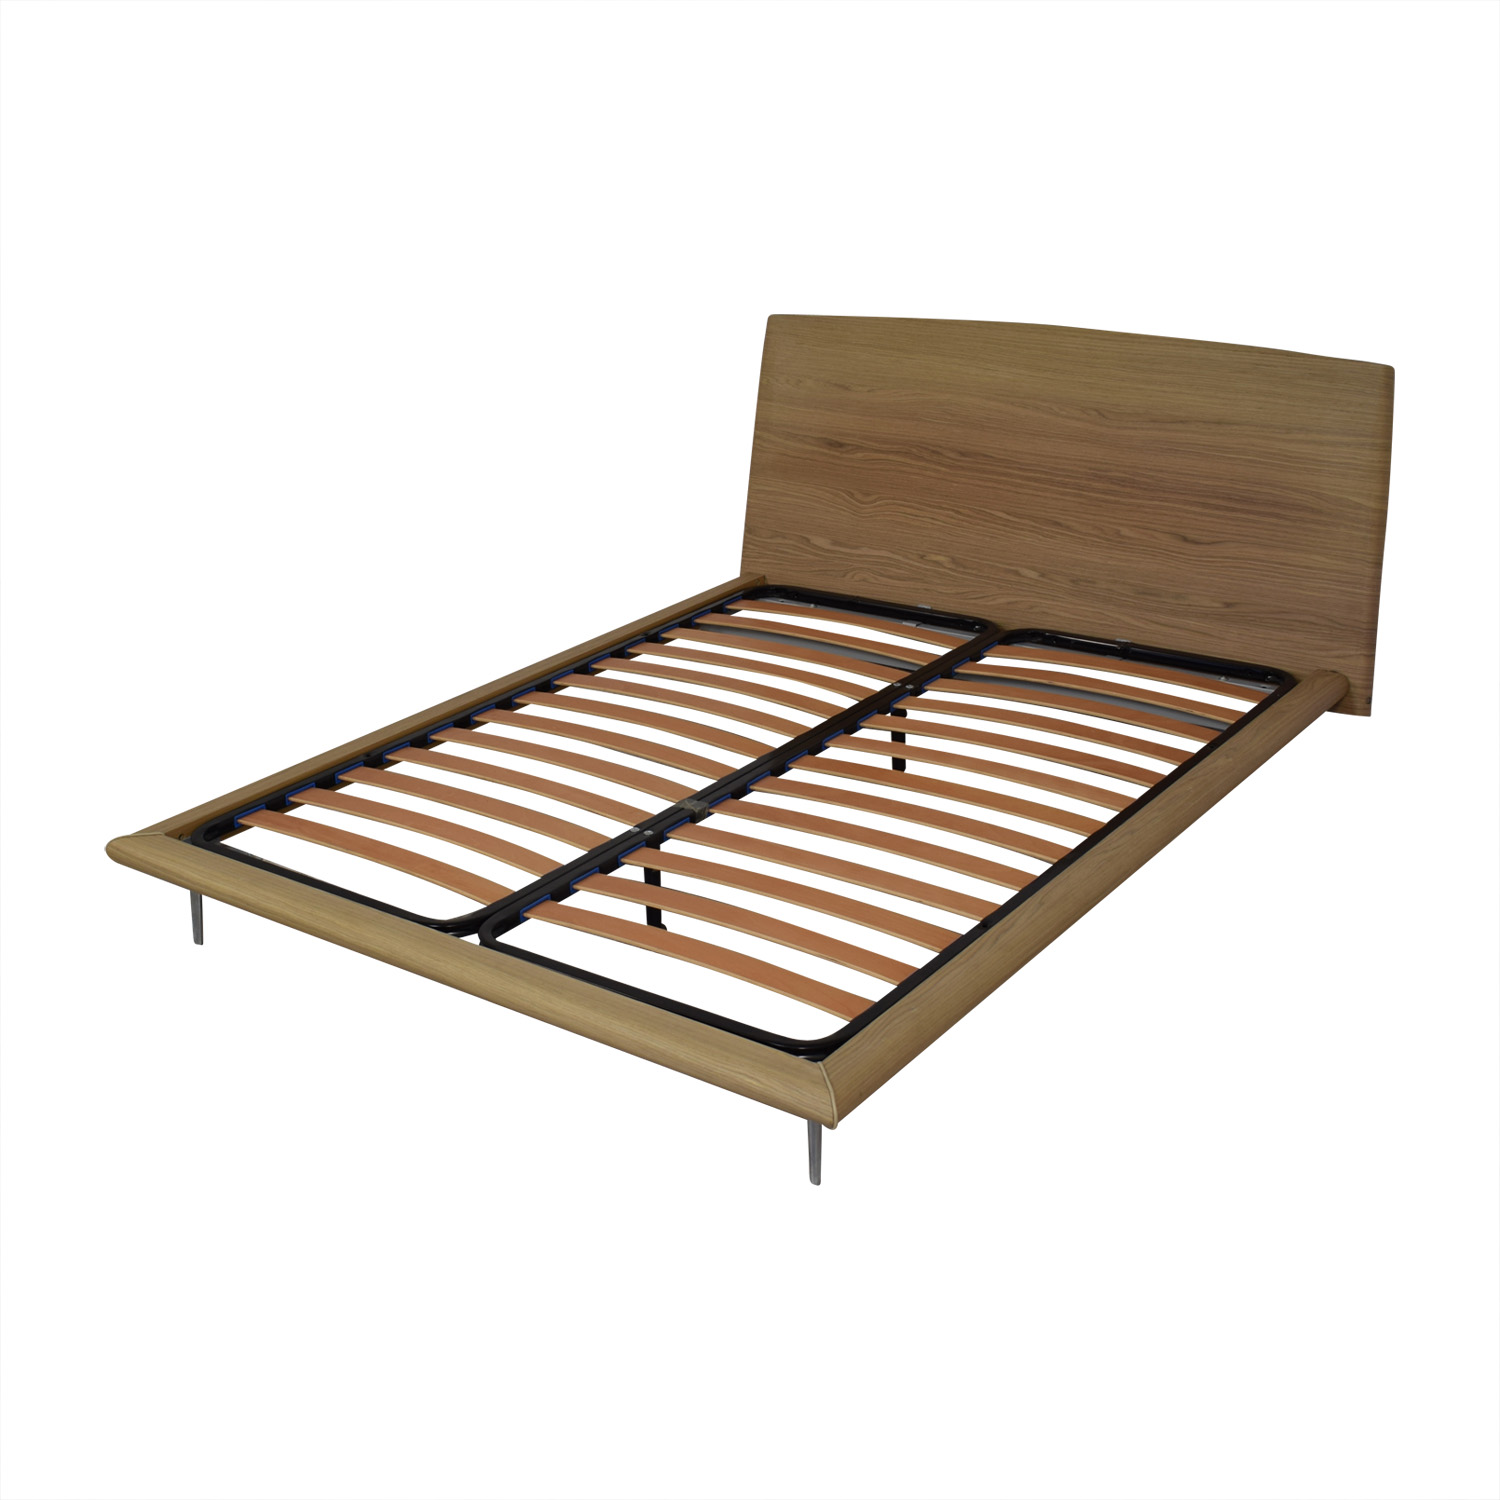 Calligaris Queen Dixie Bed / Beds